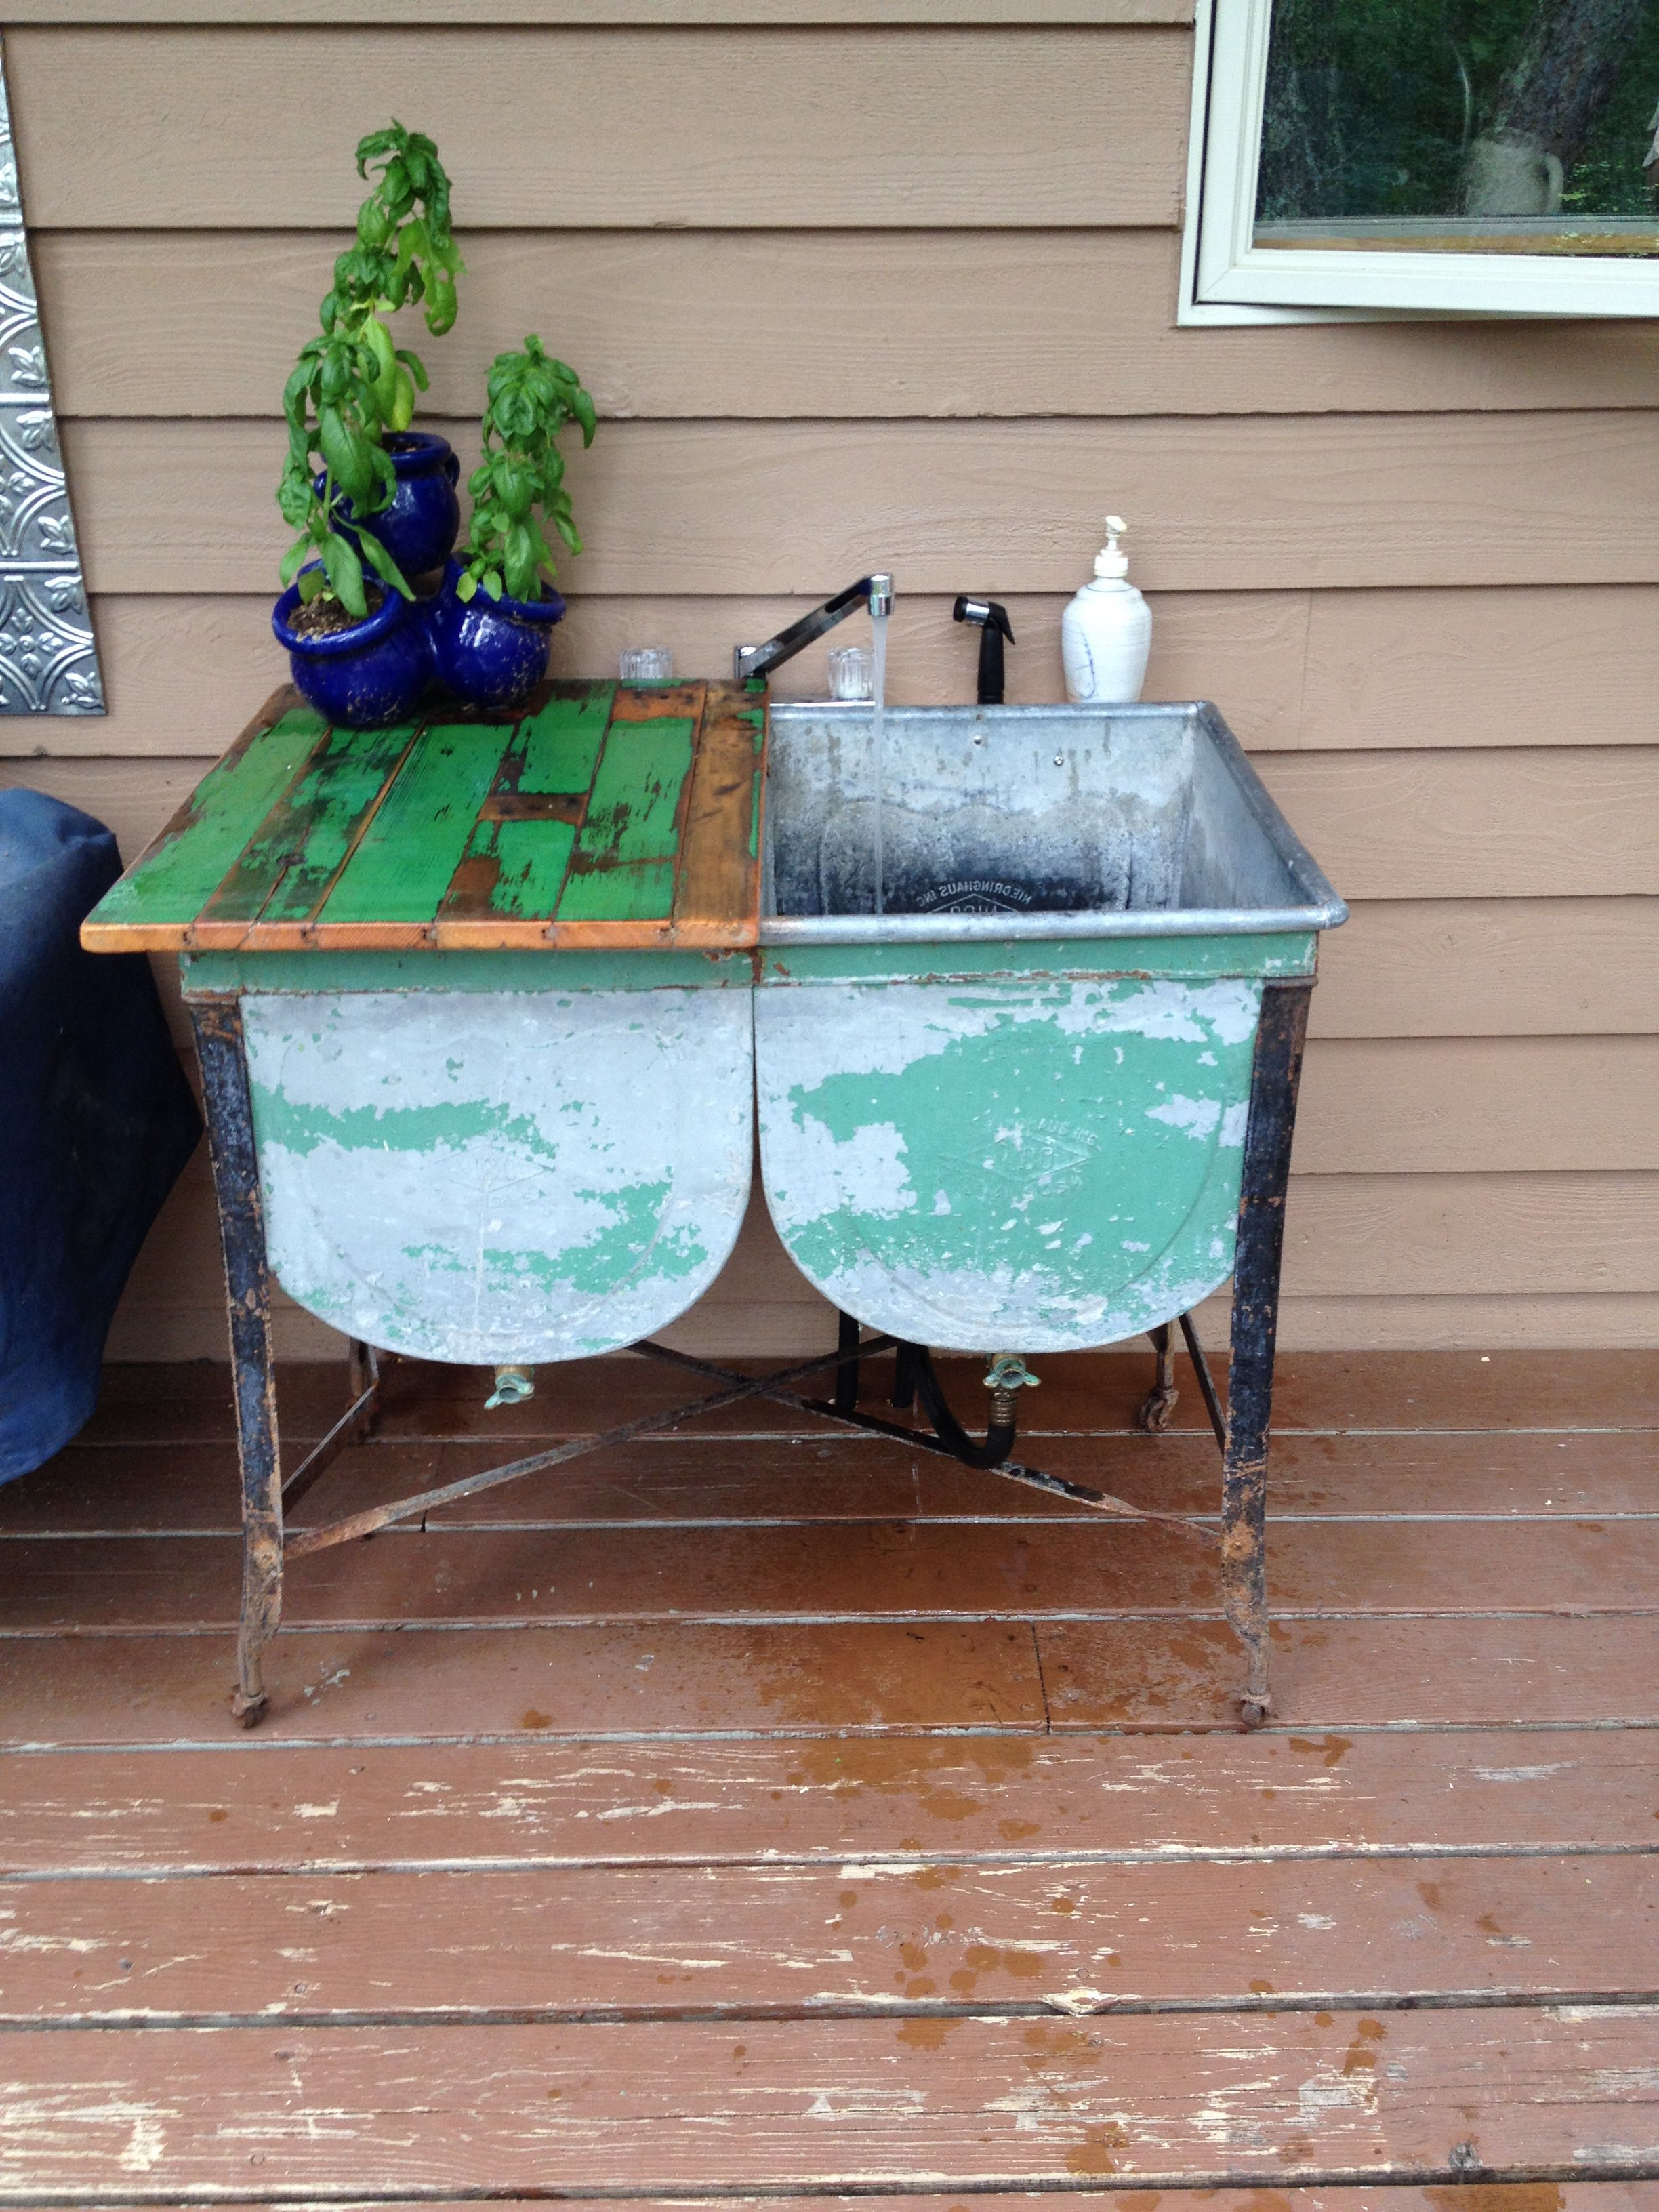 Outdoor sink from galvanized wash tub with faucet and garden hose ...